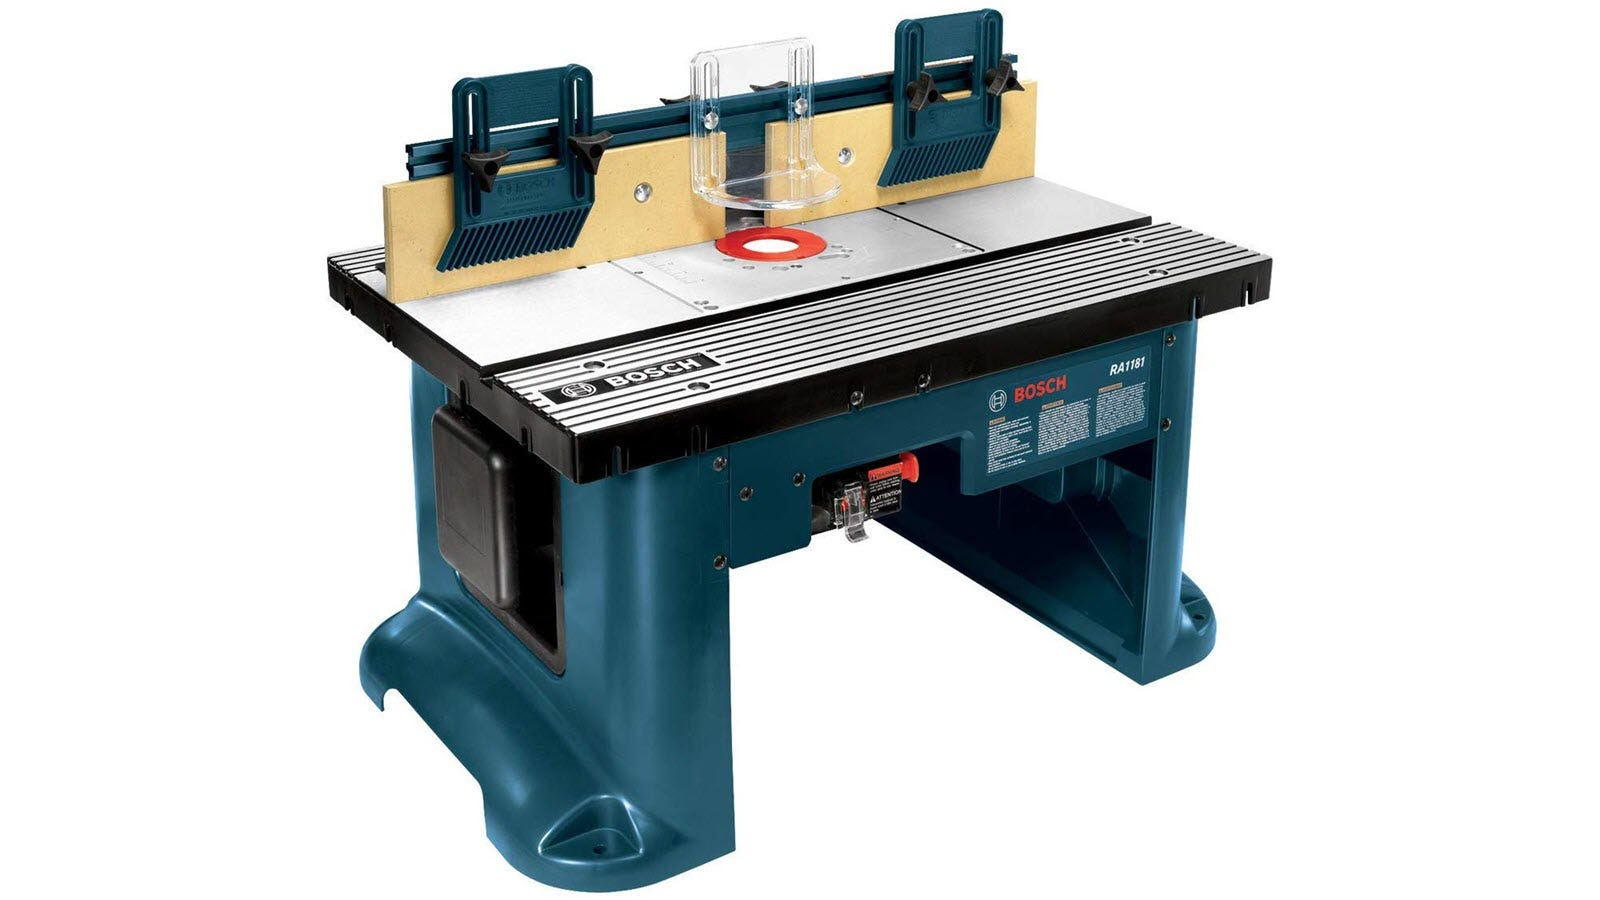 A blue Bosch router table with aluminum top.